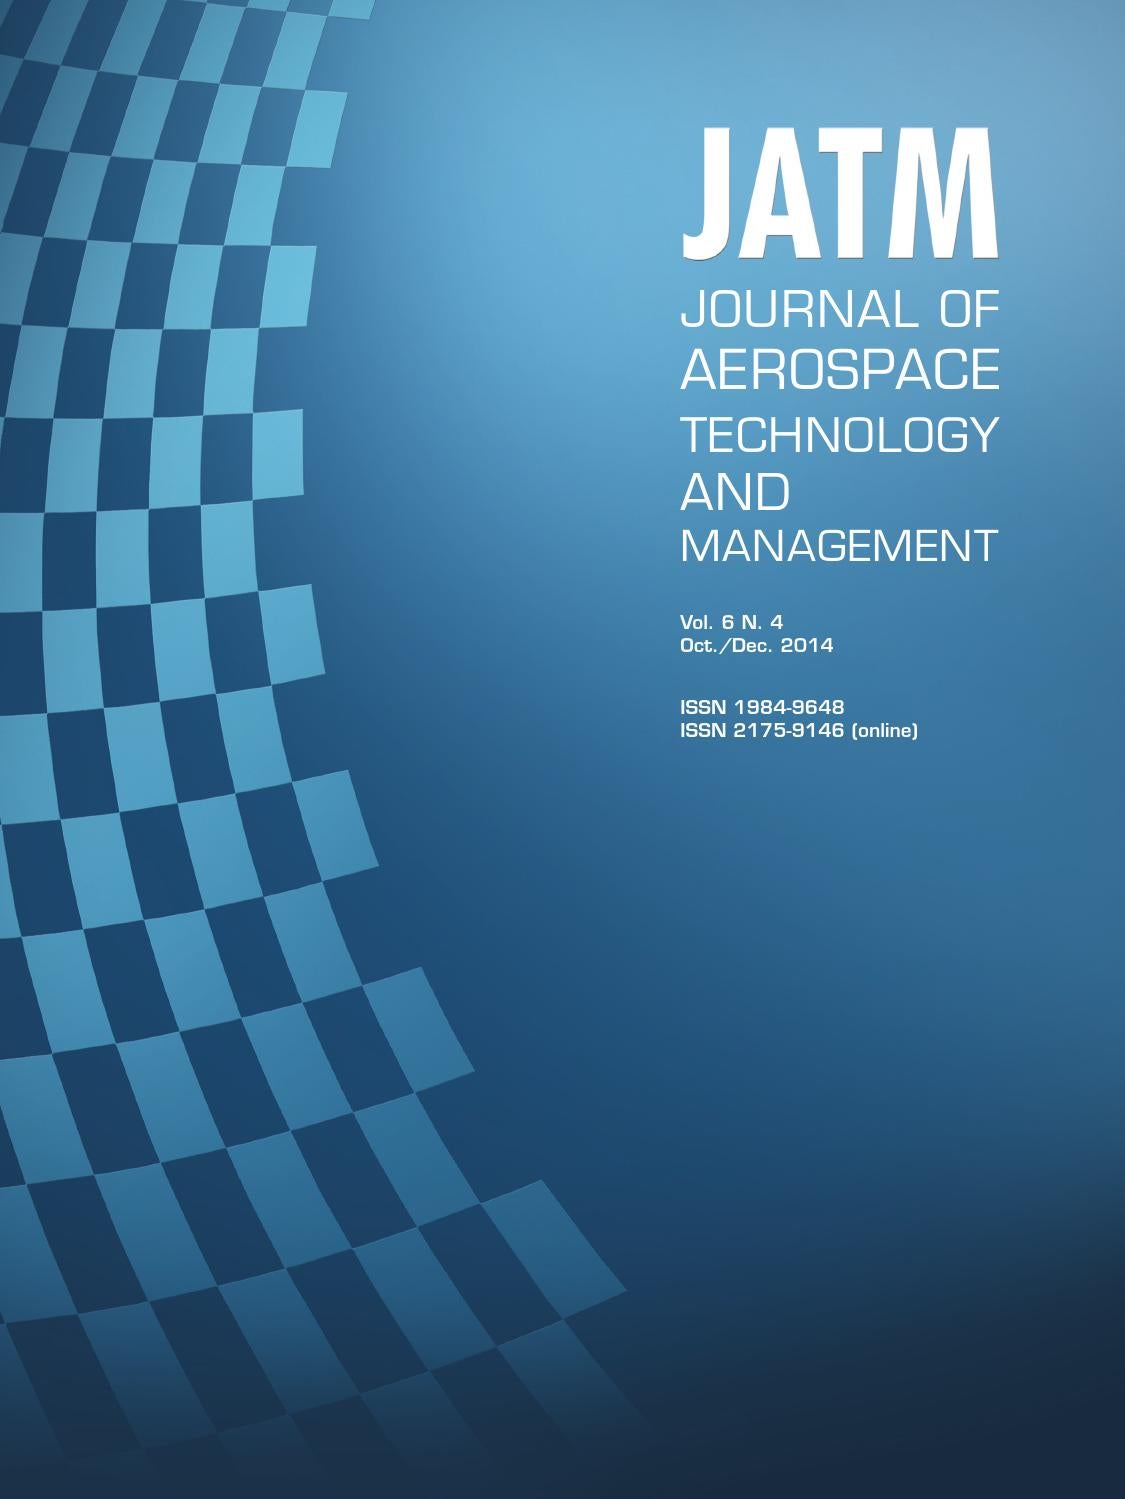 Vol. 6 N.4 - Journal of Aerospace Technology and Management by ...